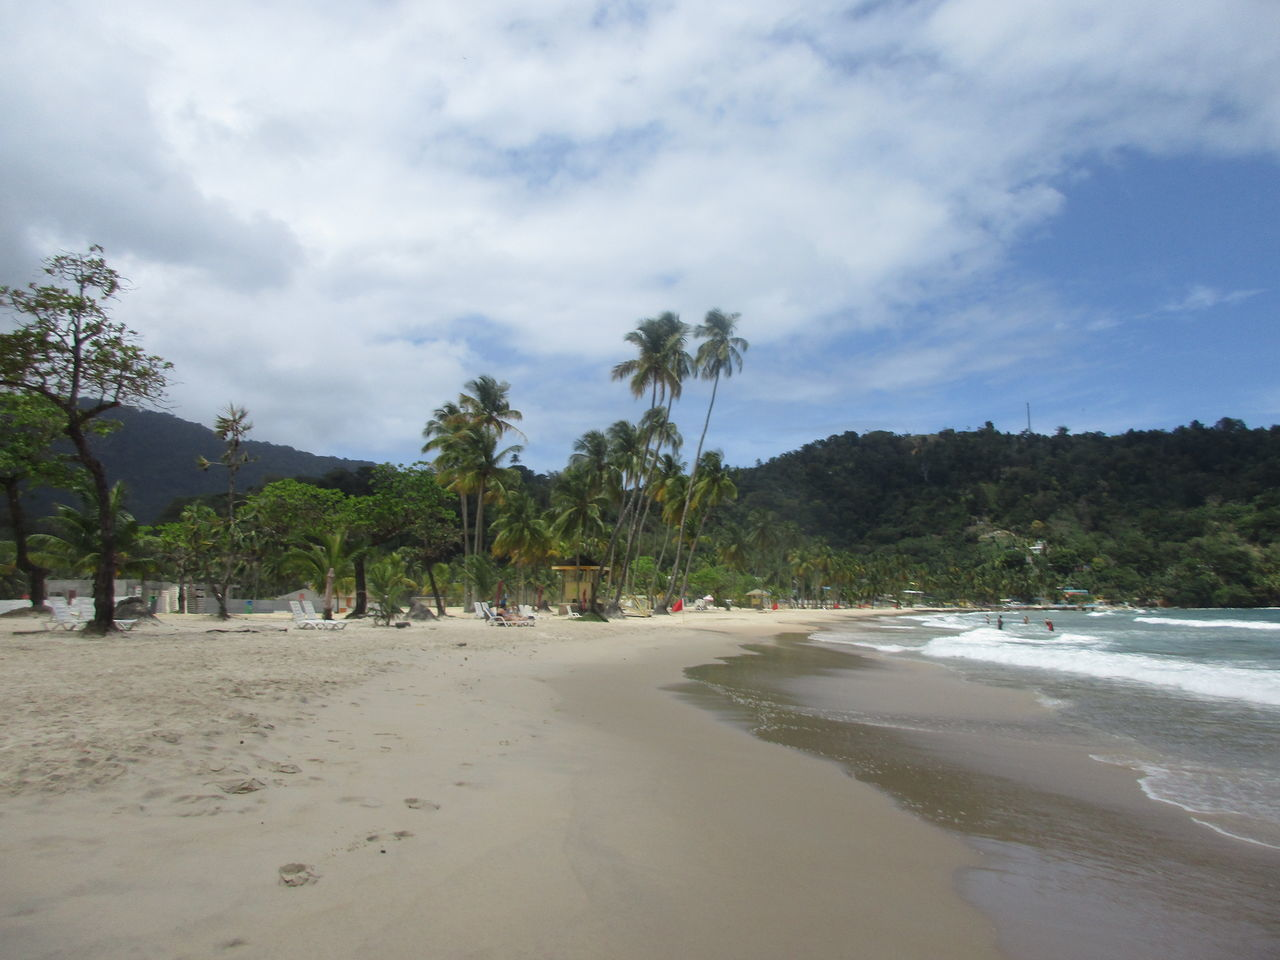 sand, beach, tree, sky, nature, tranquility, scenics, tranquil scene, beauty in nature, cloud - sky, sea, growth, palm tree, no people, outdoors, day